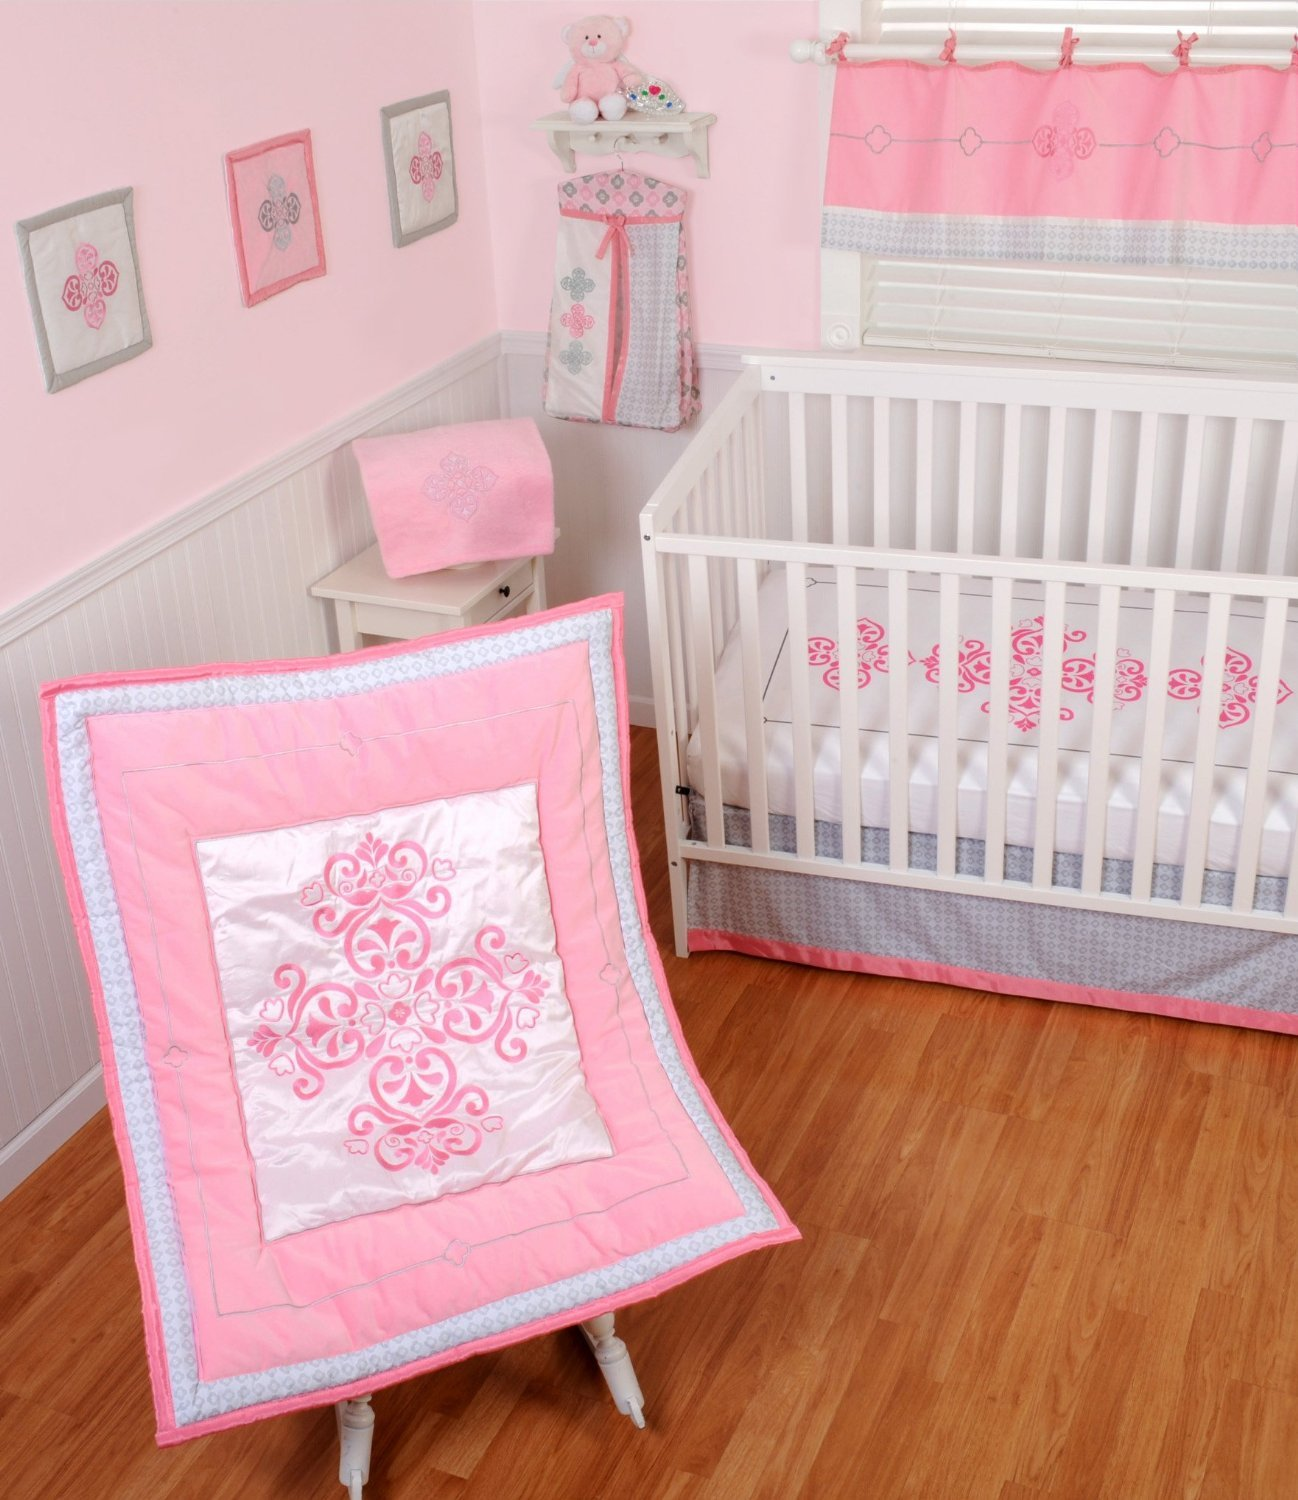 Sumersault 4 Piece Crib Bedding Set, Princess by Sumersault [並行輸入品]   B00MH80D0K